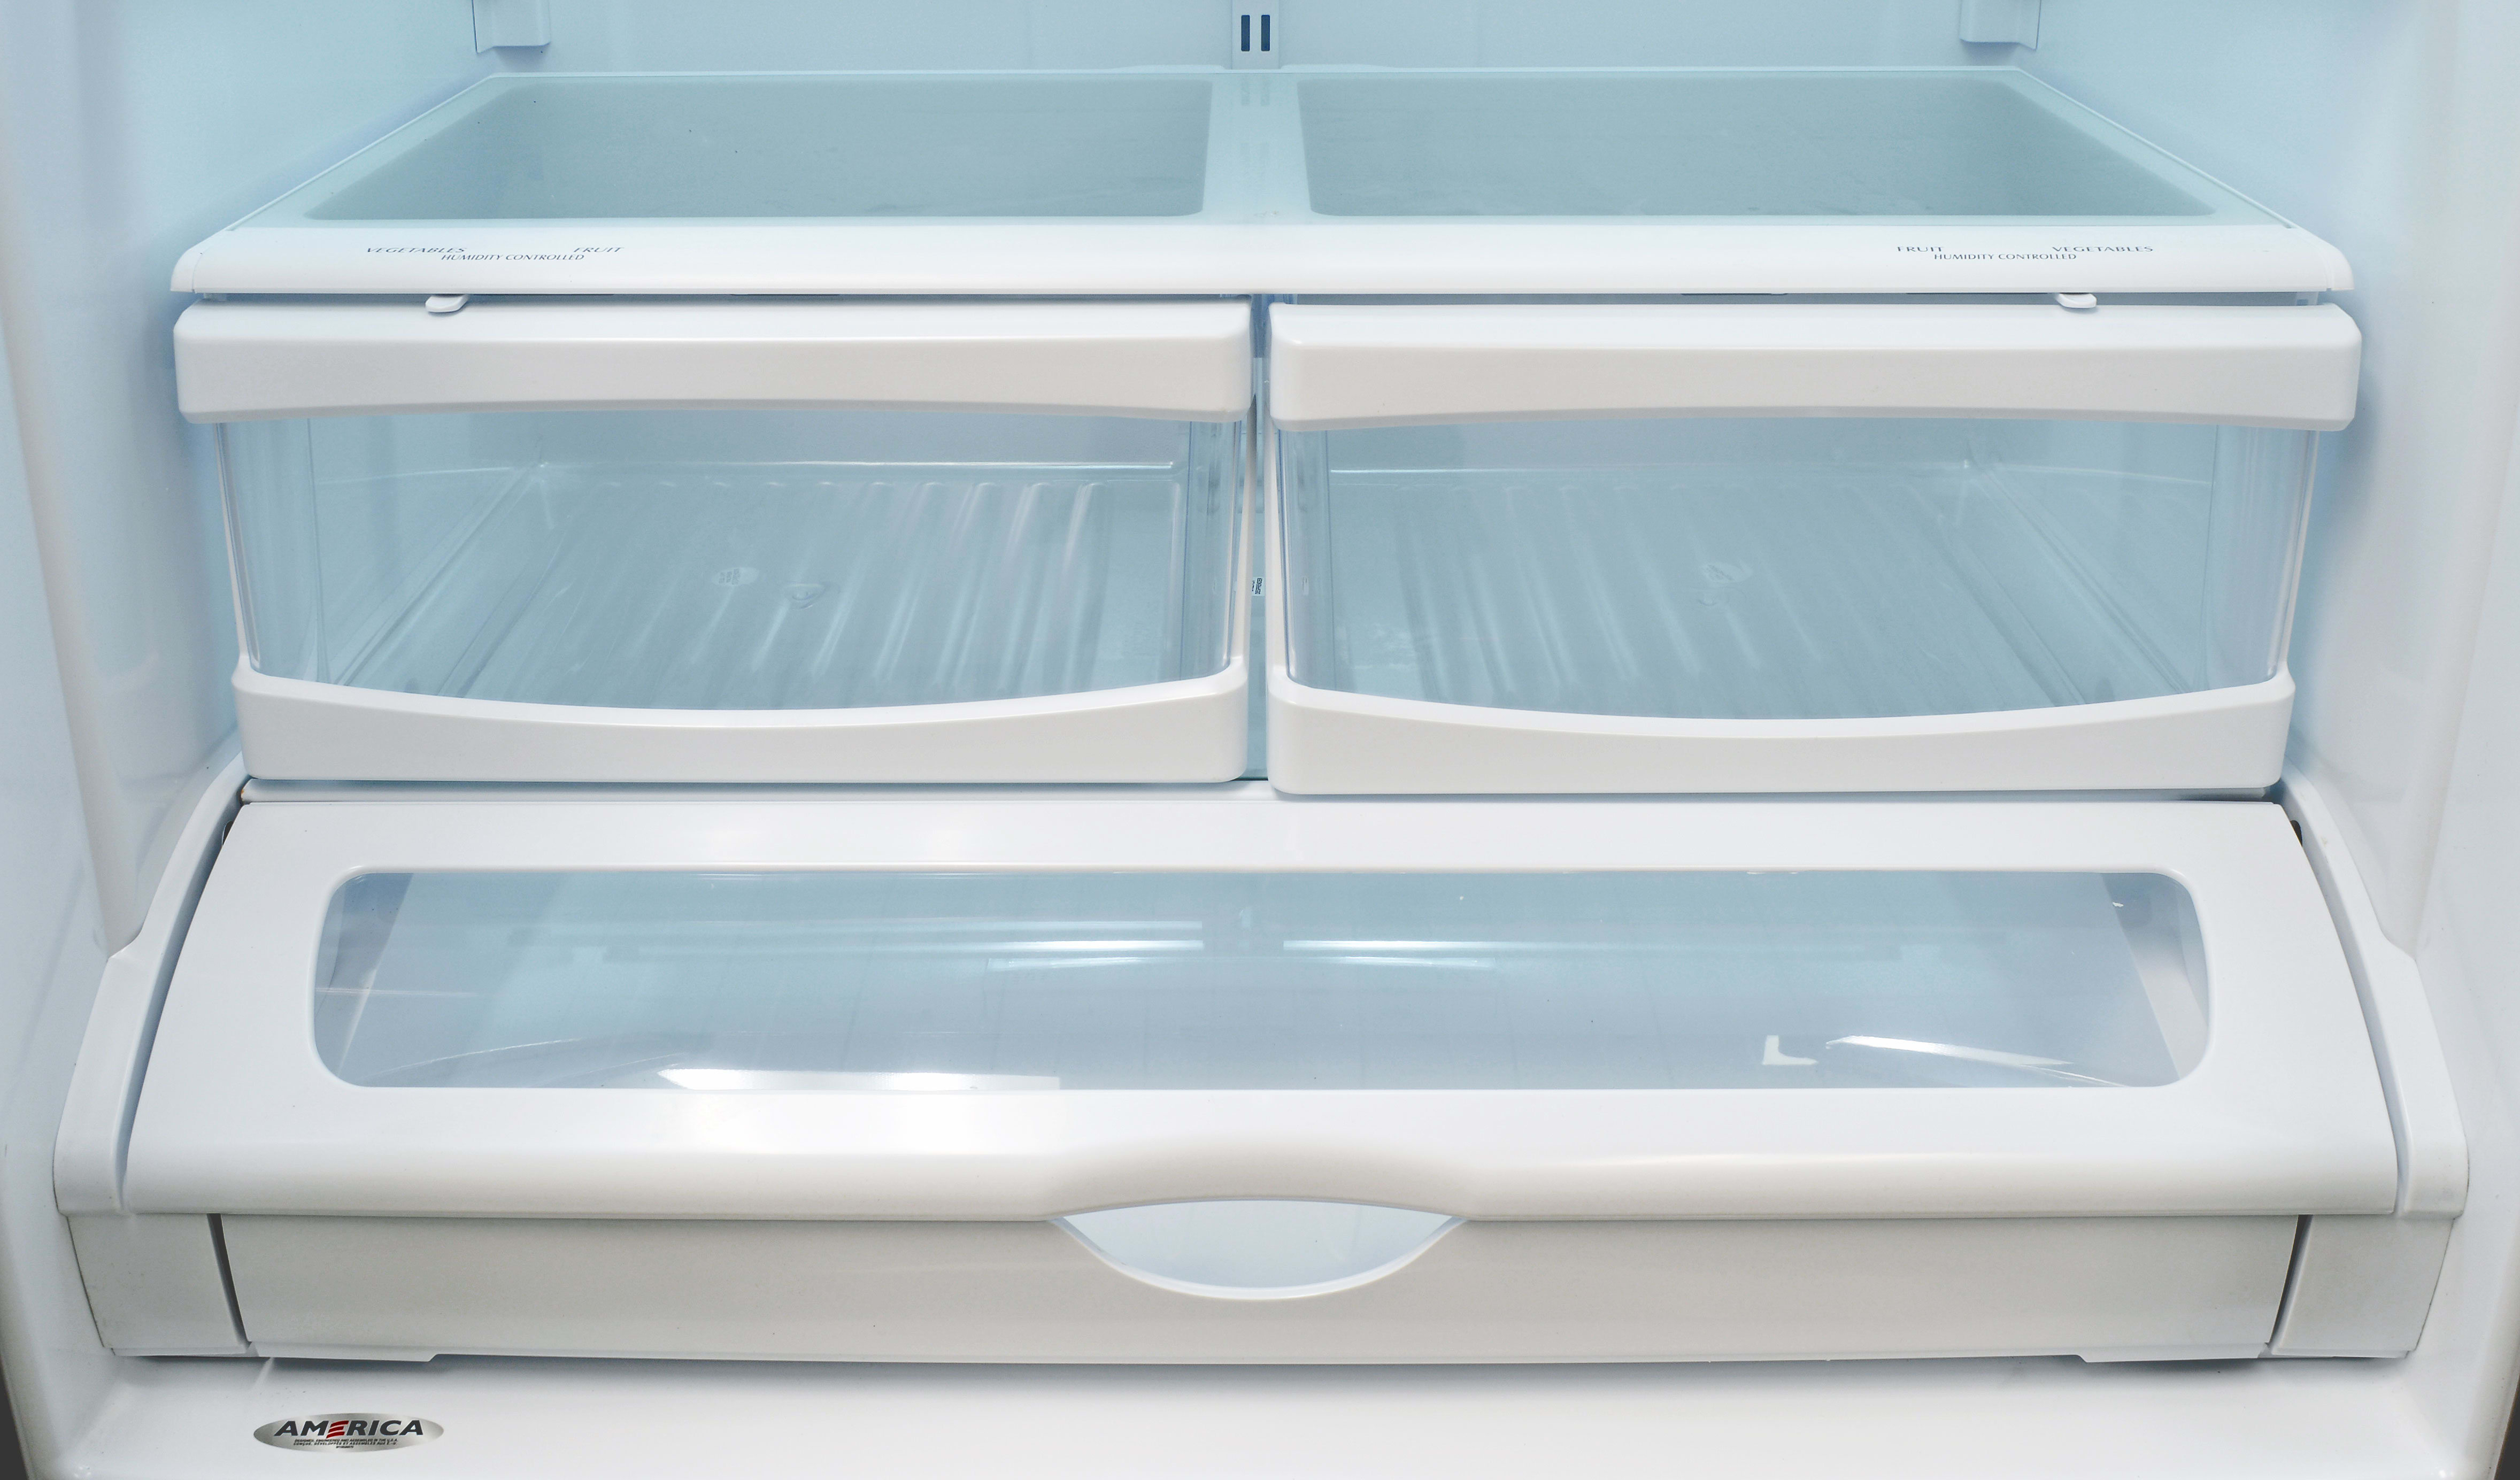 The Whirlpool WRF535SMBM's crispers are unexpectedly smooth for such an affordable fridge, and highly effective, too.